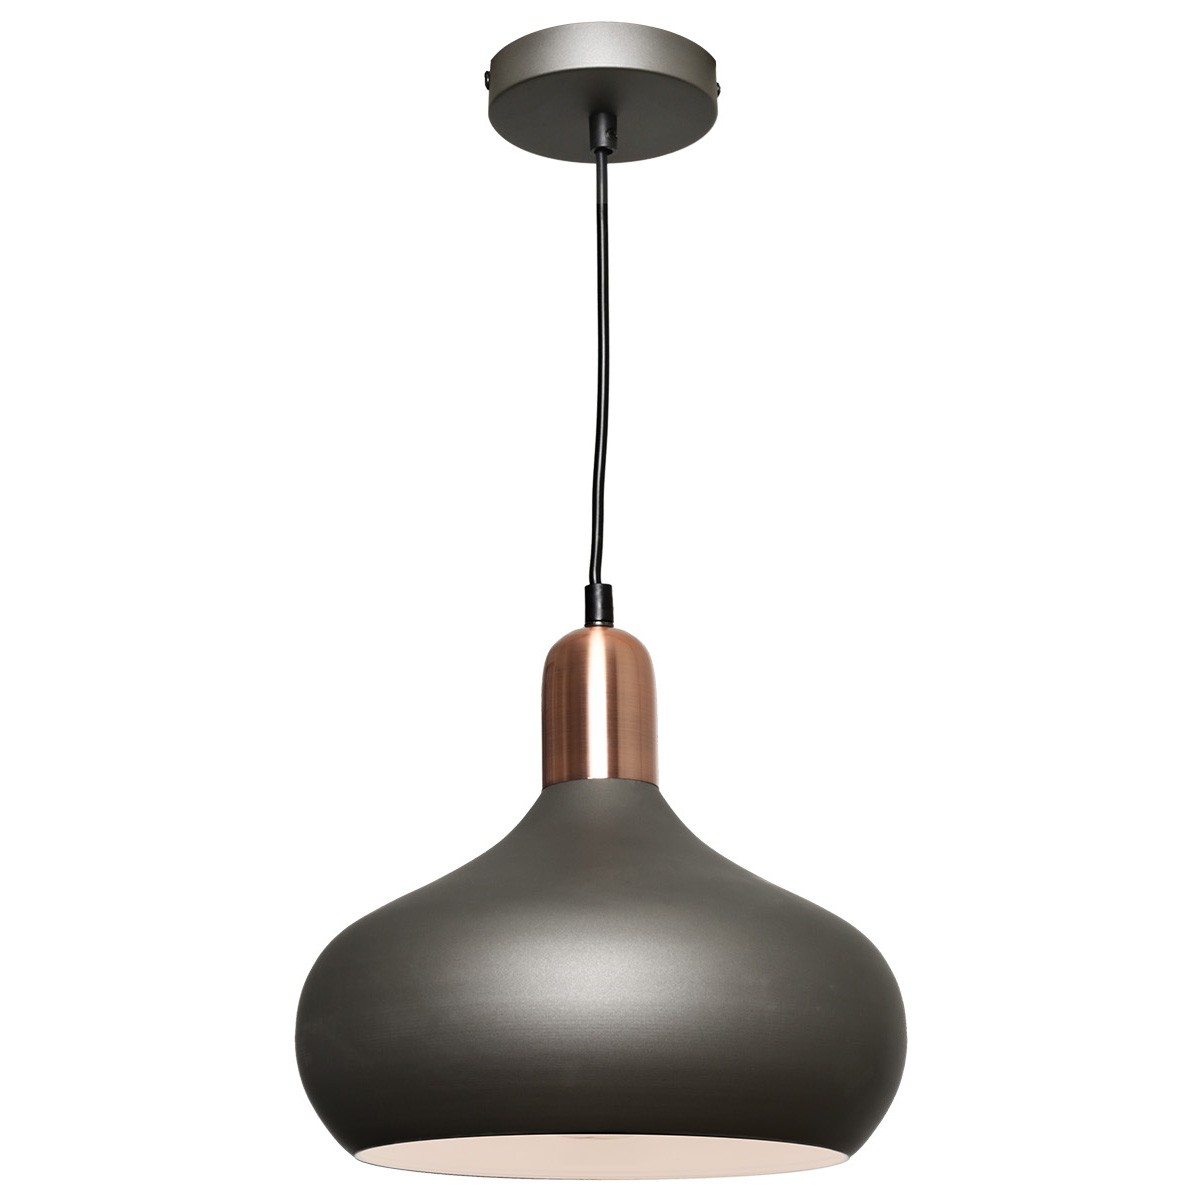 Bevo Metal Pendant Light, Bowl, Charcoal / Copper